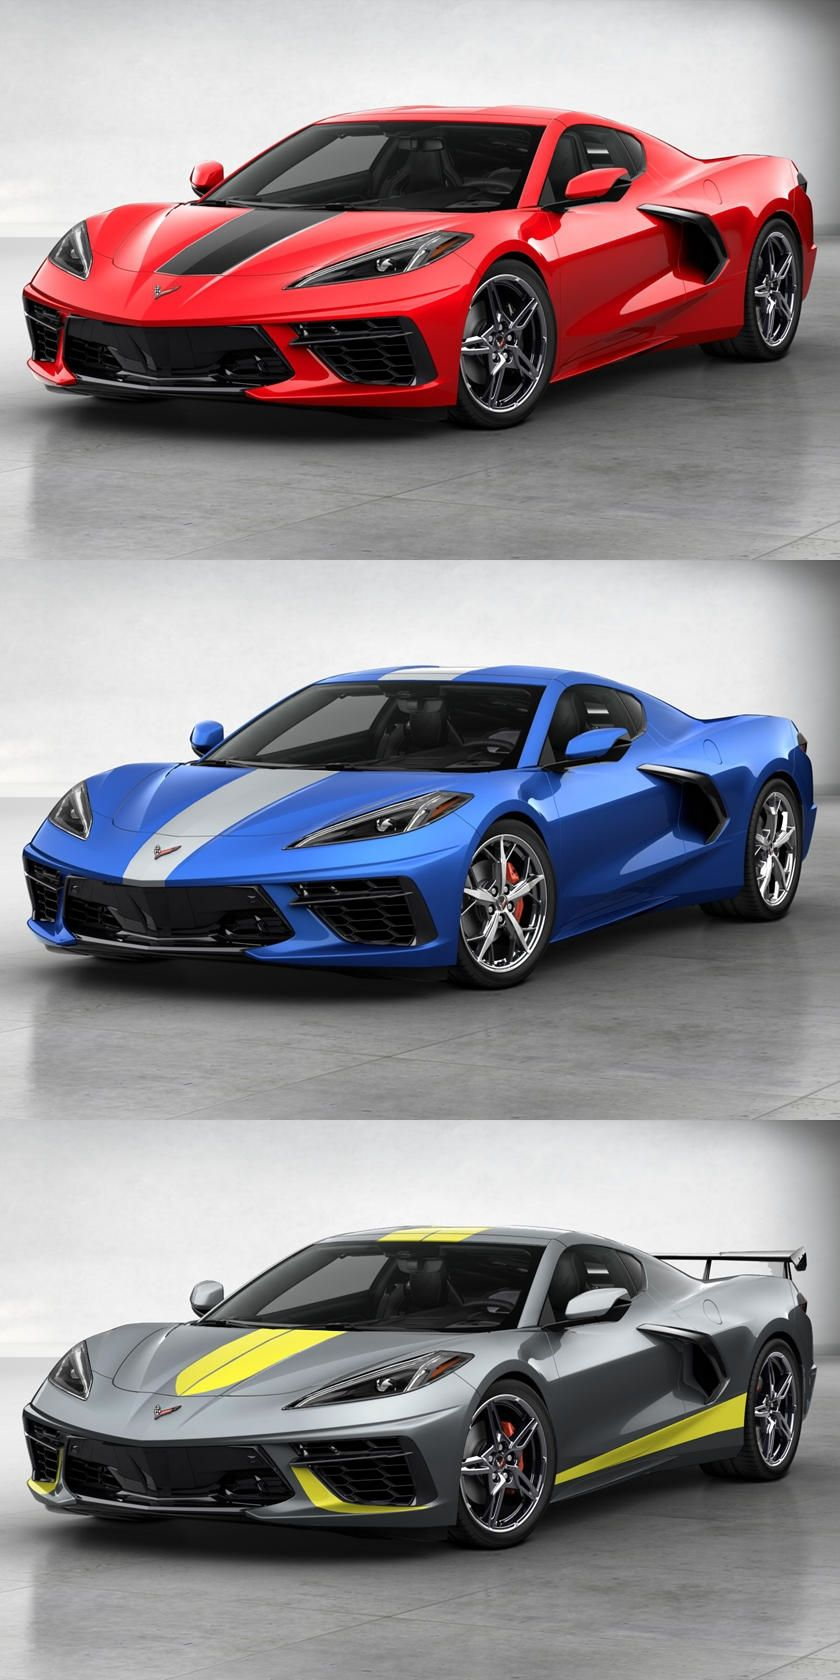 This Is Why The 2021 Corvette Is Worth Waiting For. Top of